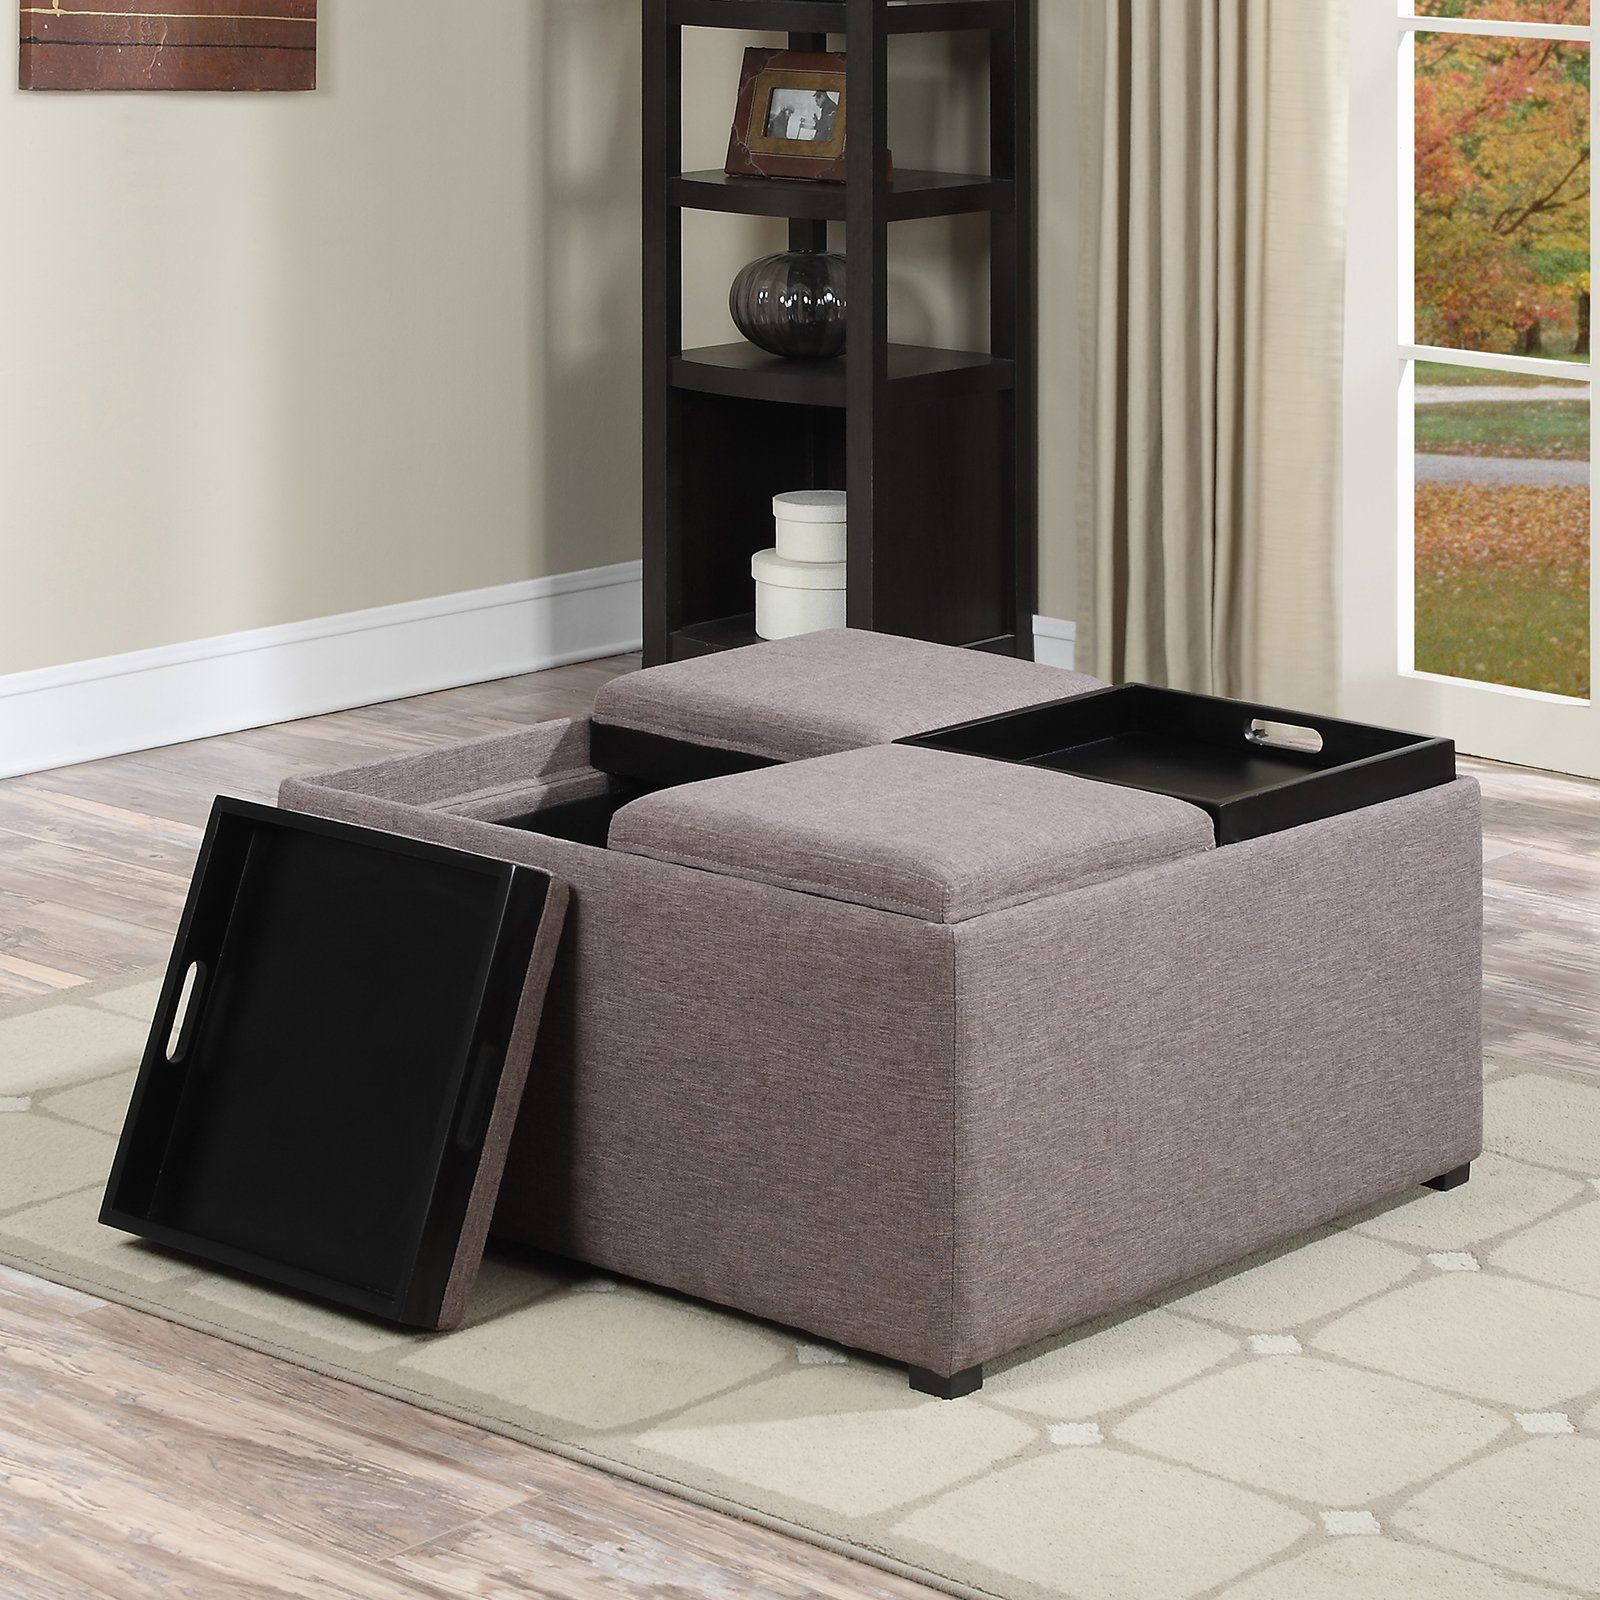 Simpli Home Avalon Linen Coffee Table Storage Ottoman | from ...